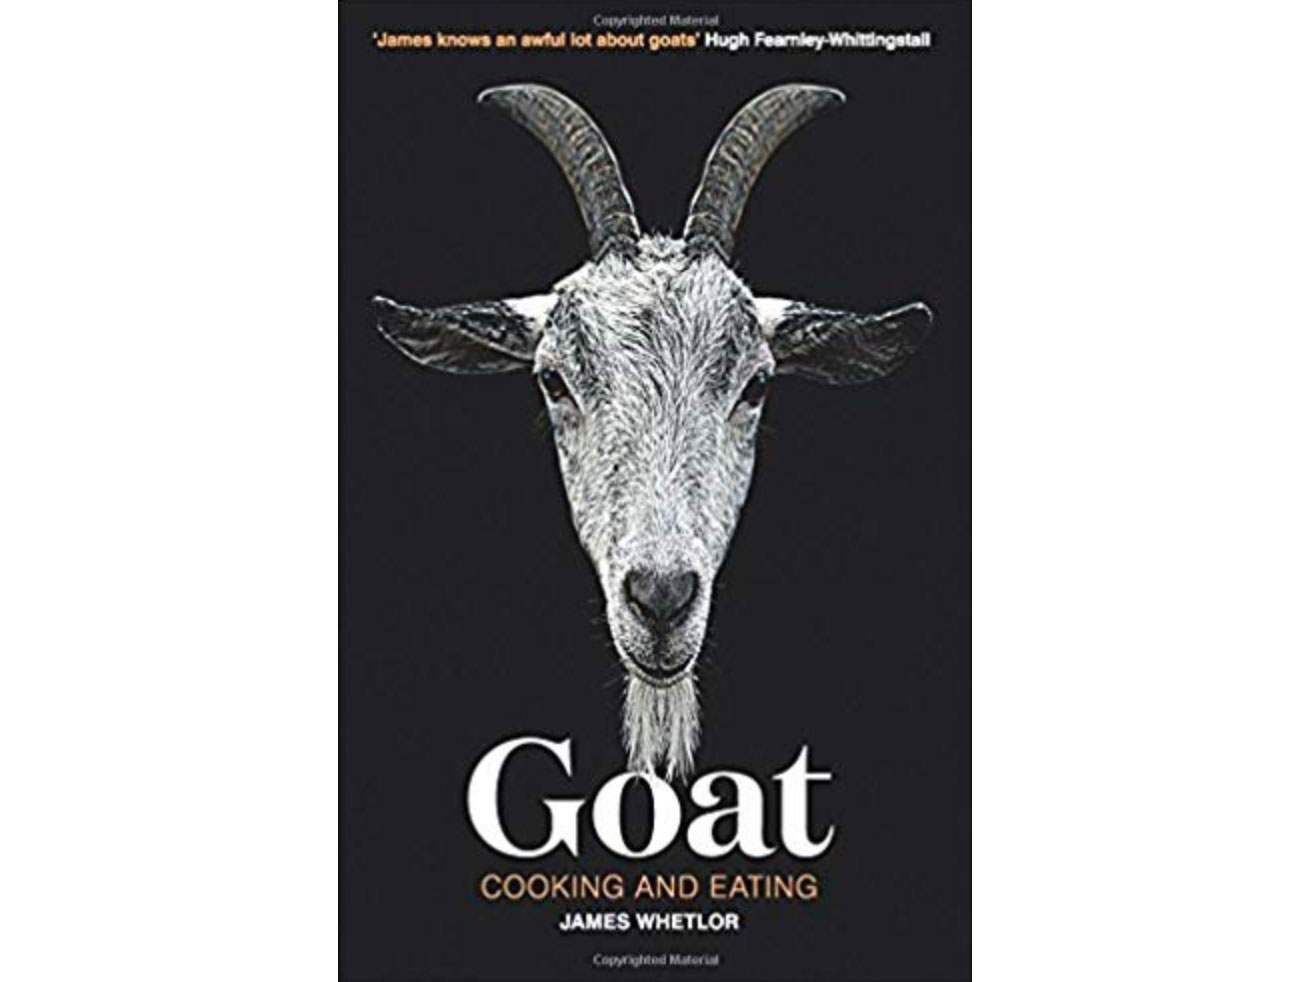 James Beard Award Winner Goat